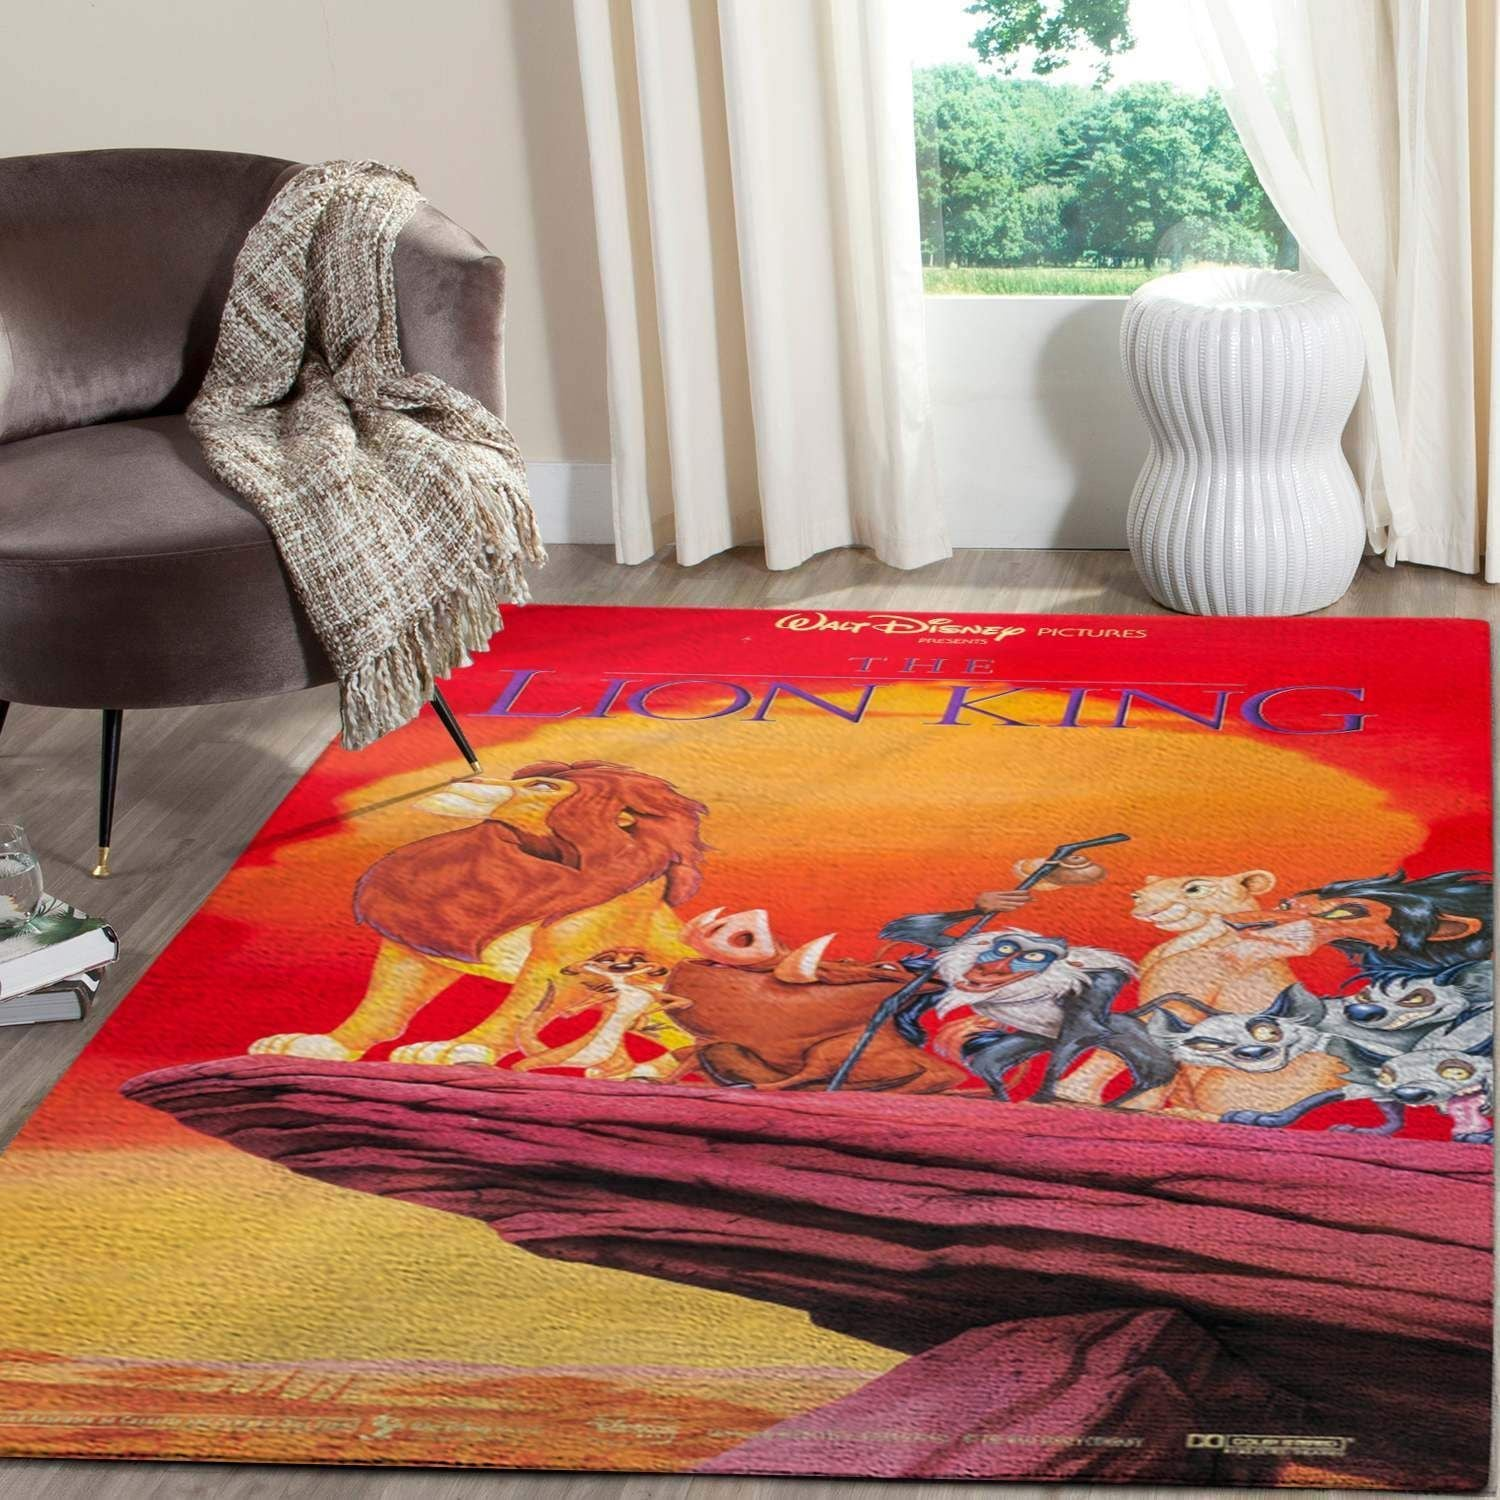 The Lion King Area Rugs Living Room Carpet Christmas Gift Floor Decor RCDD81F34950